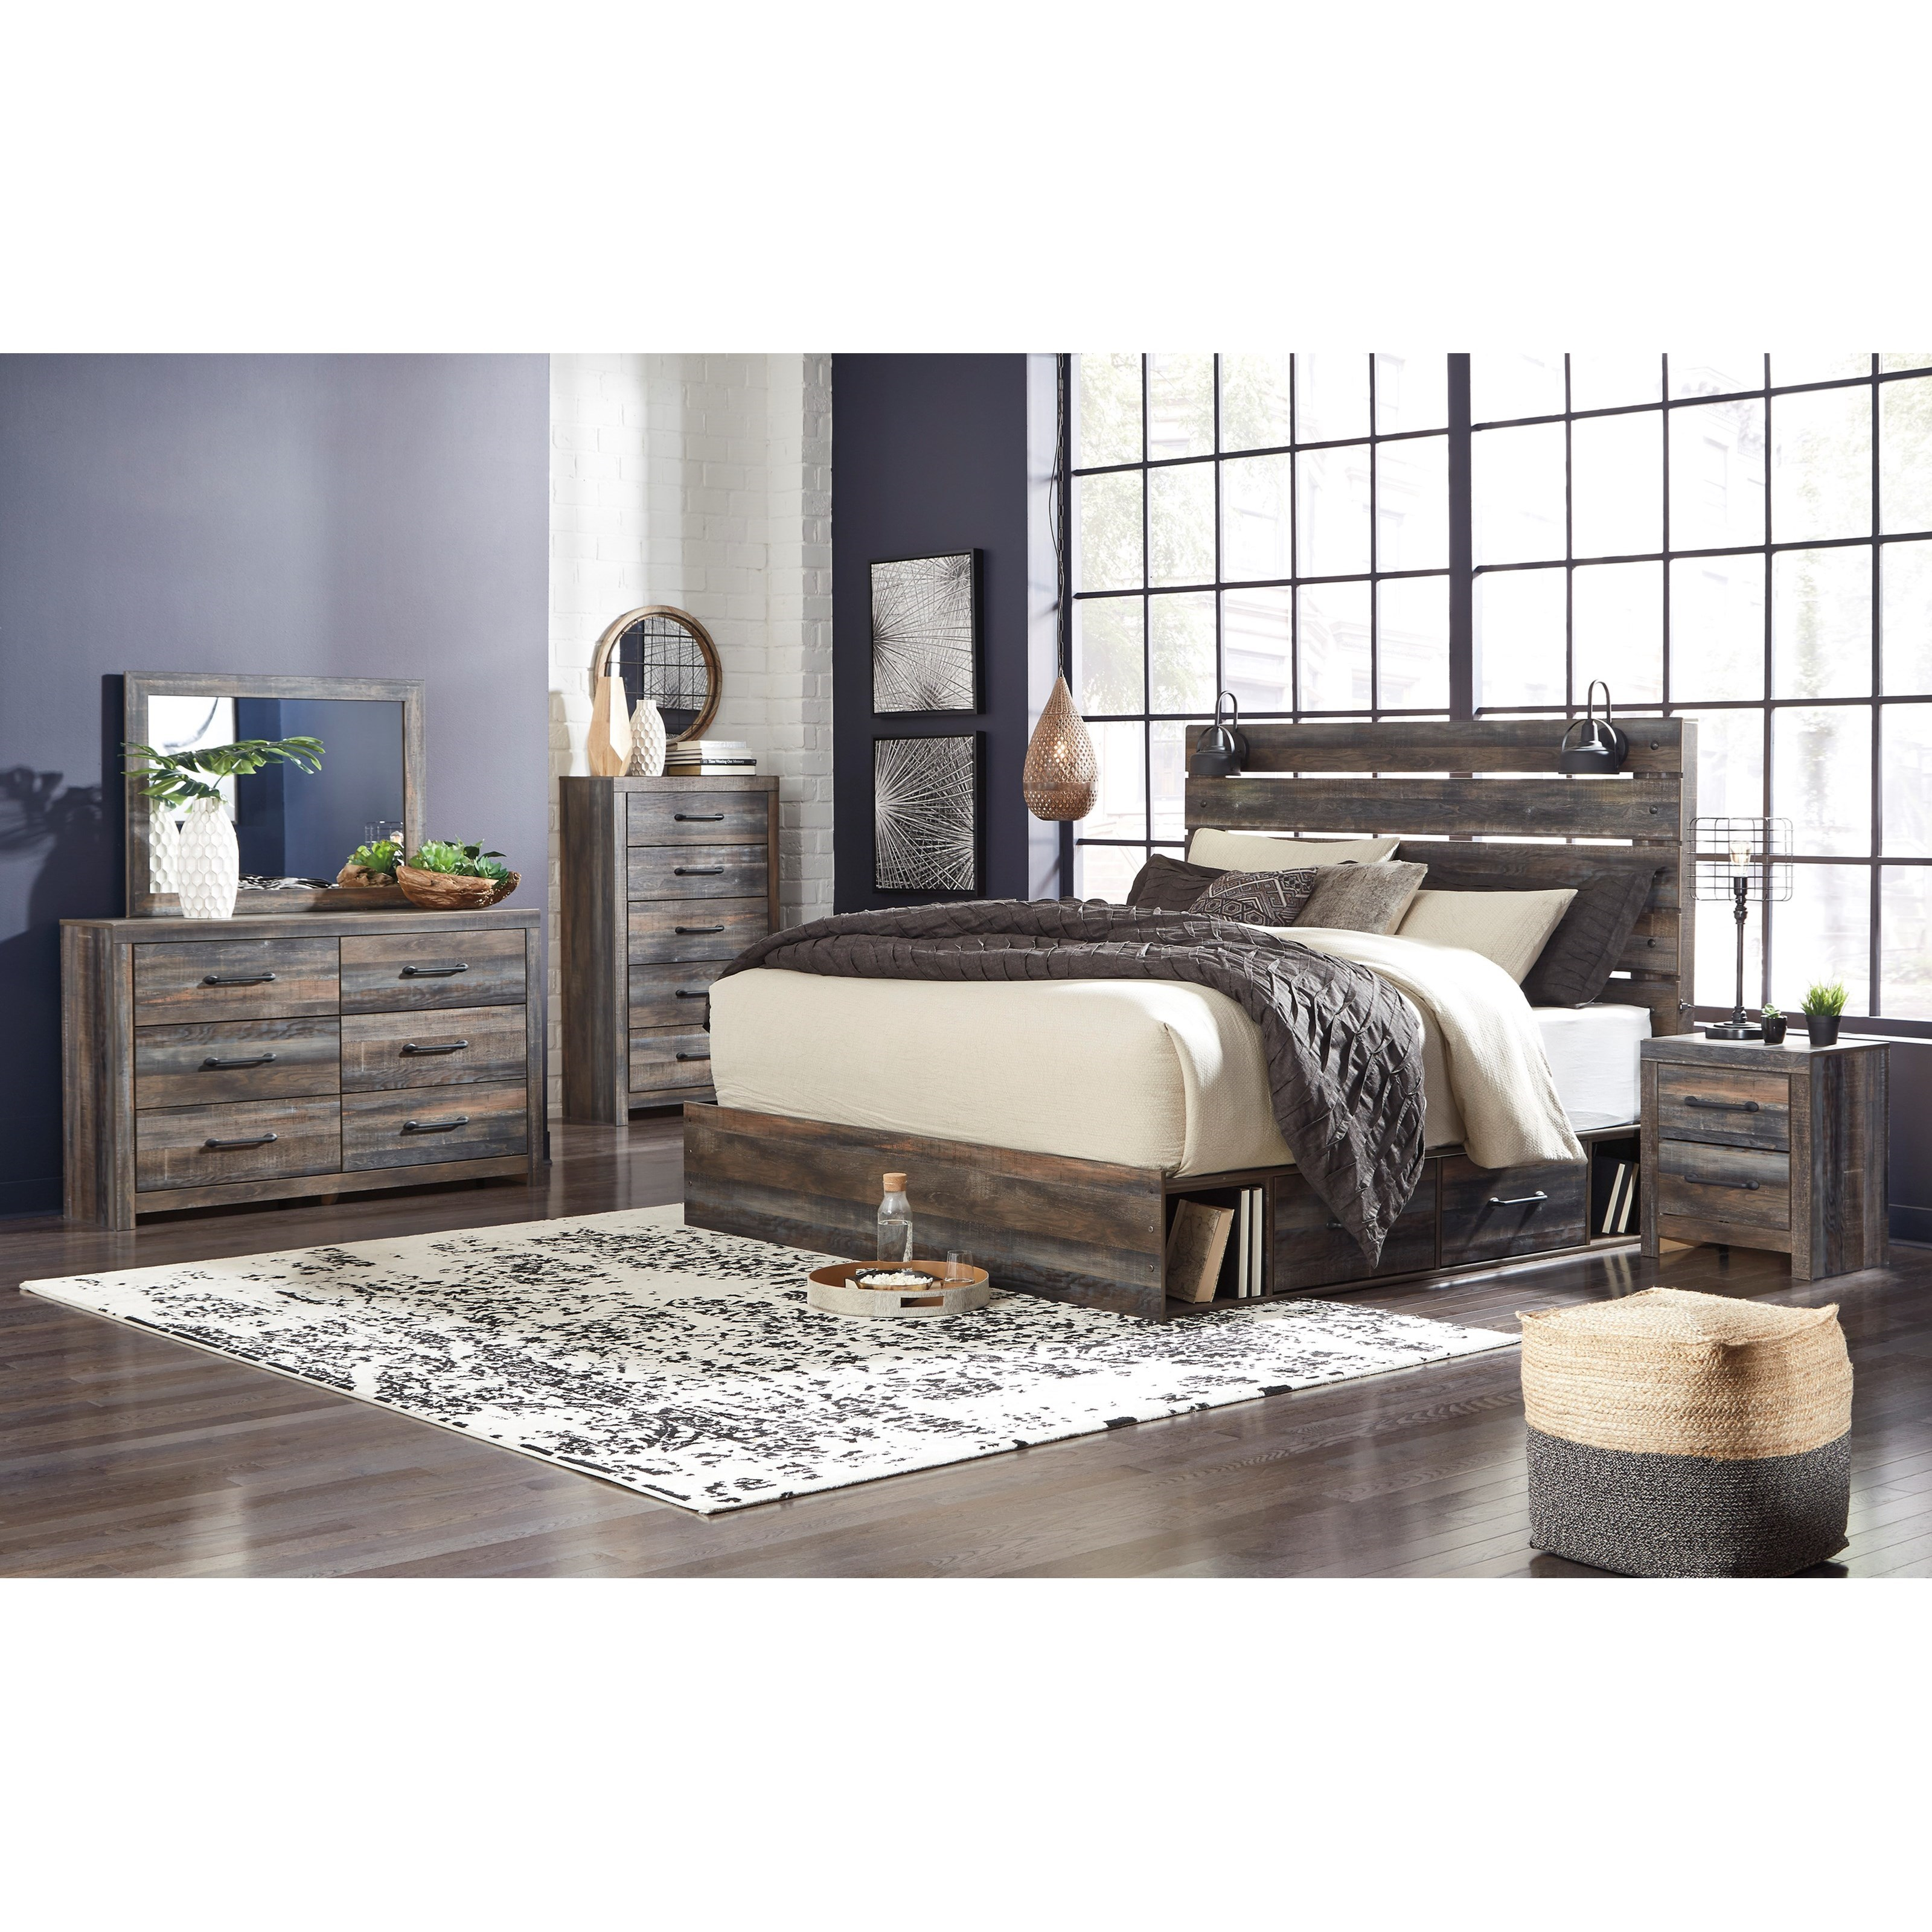 Signature Design by Ashley Drystan Rustic King Storage Bed ...